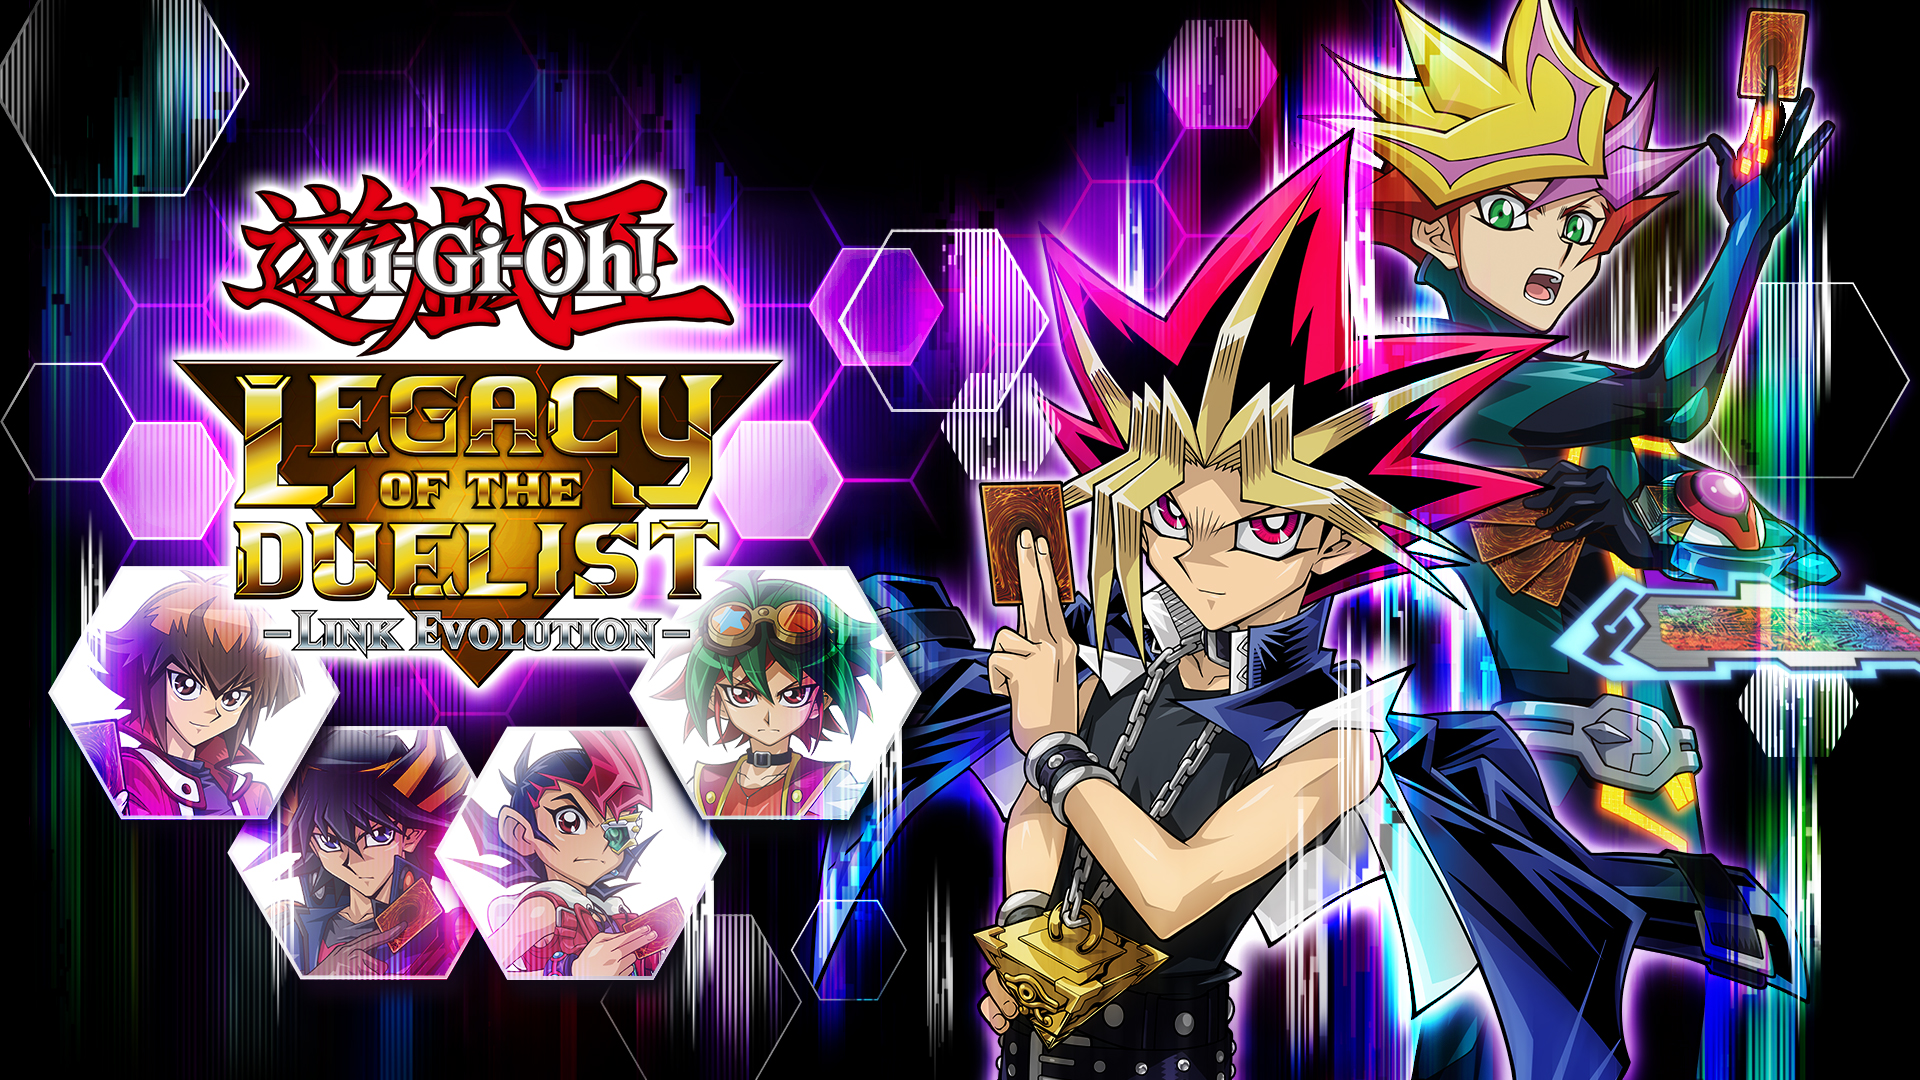 Major update available for Yu-Gi-Oh! Legacy of the Duelist: Link Evolution